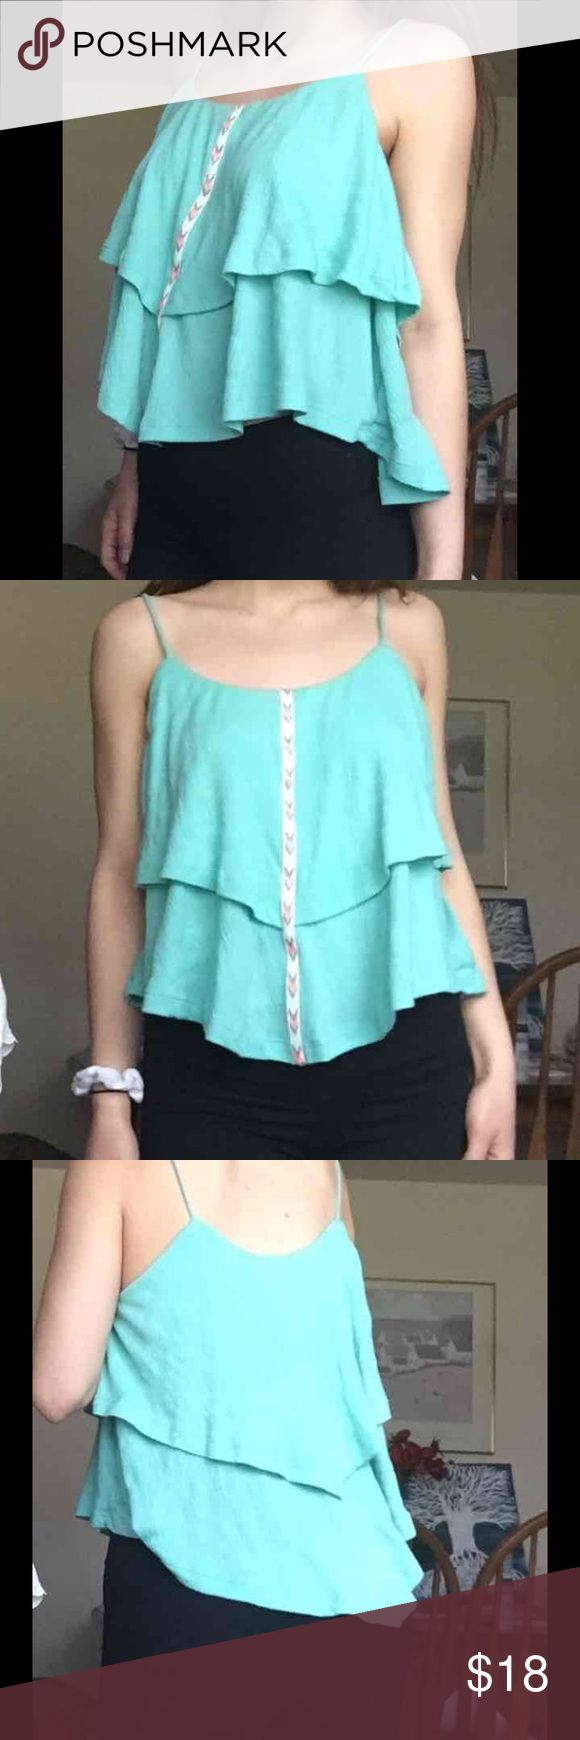 Two tier turquoise cami Tiered blue cami super cute front embroidery perfect for summer like urban outfitters PLEASE NO LOW BALLING THANK YOU :) Urban Outfitters Tops Tank Tops